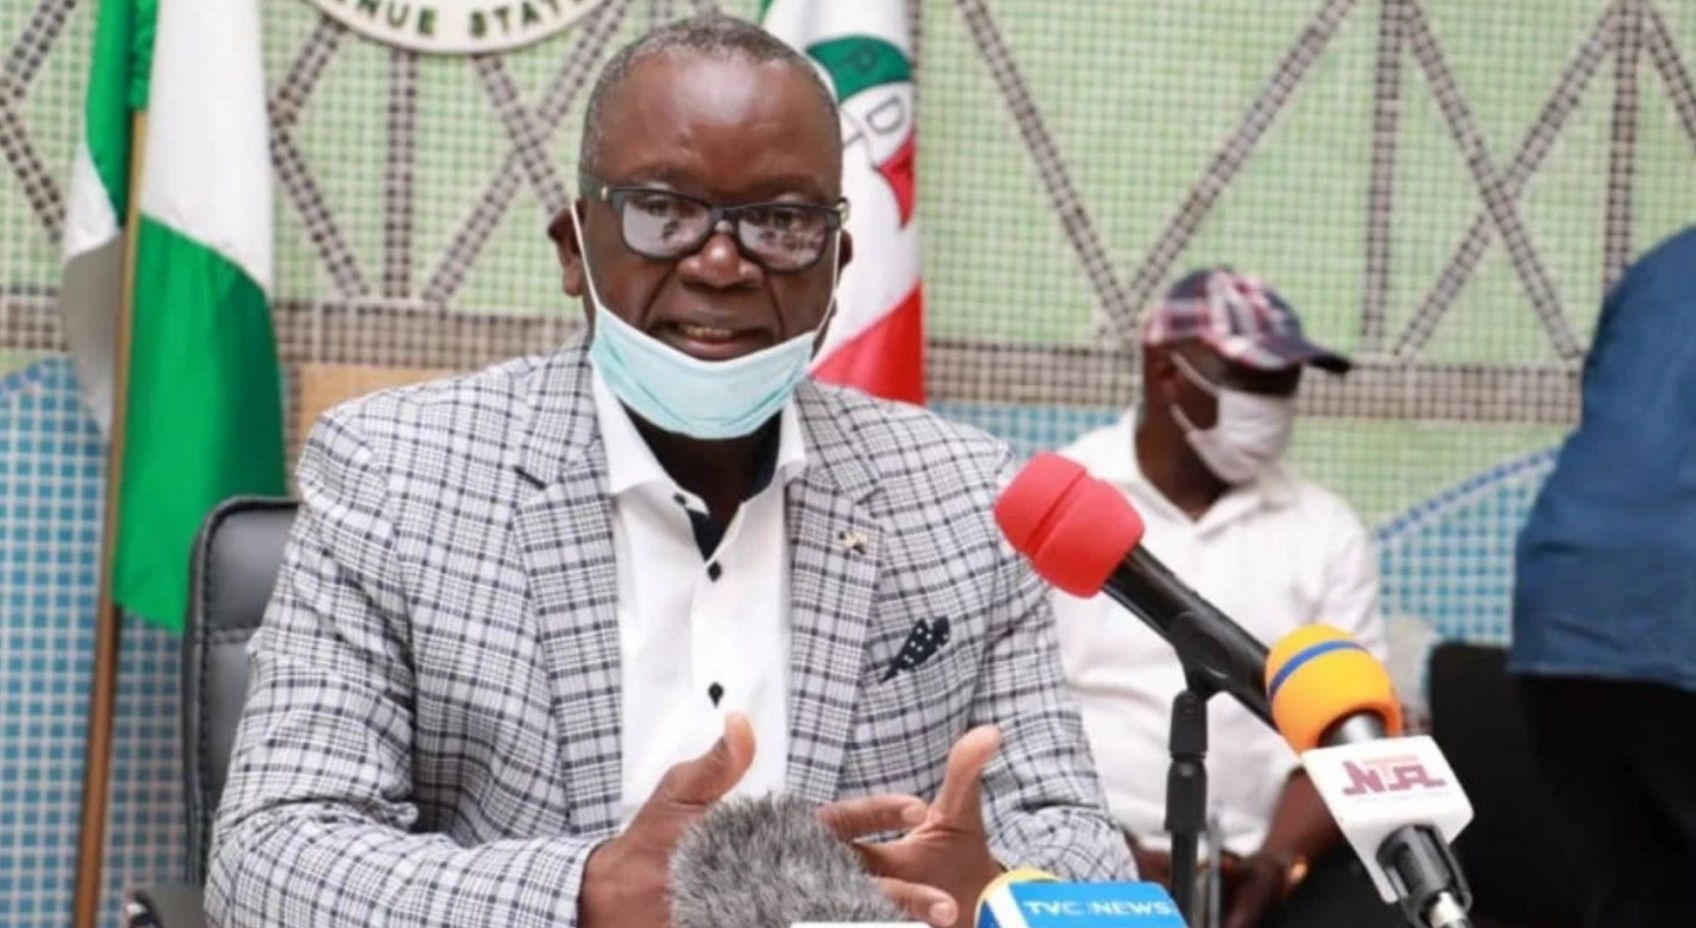 Benue govt approves minimum wage for workers from grade level 01-06